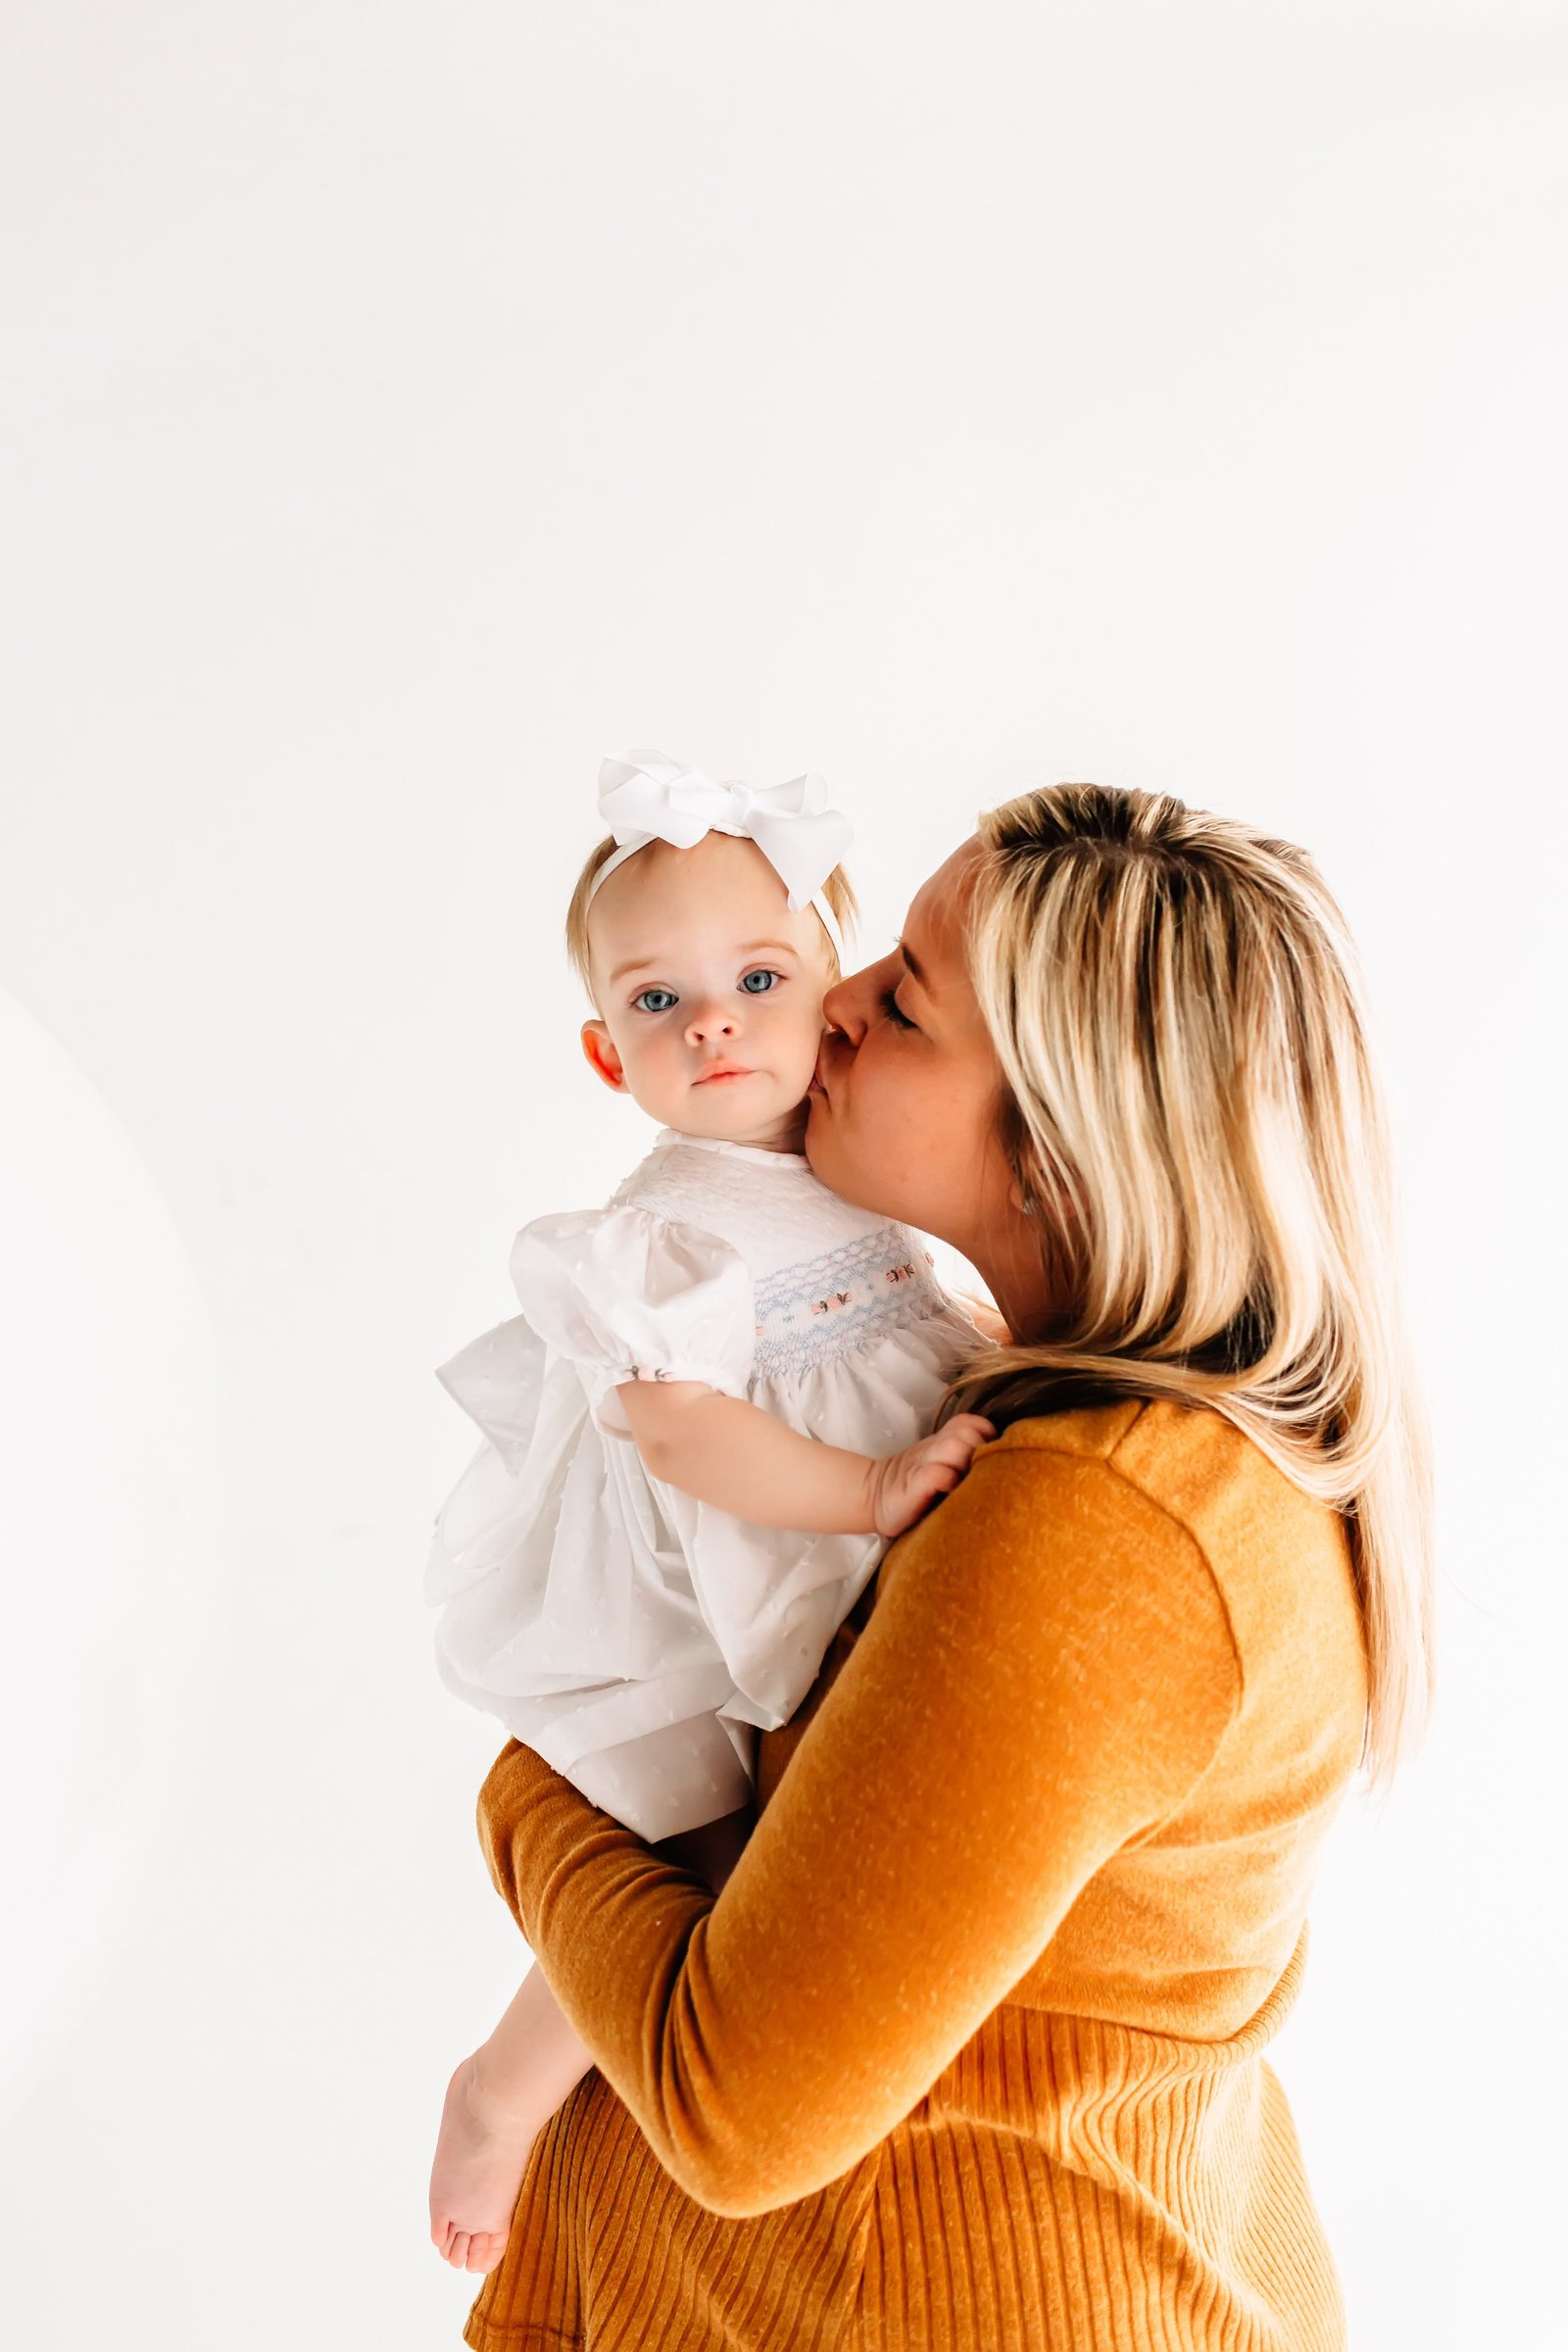 St_Louis_Baby_Photographer_Kelly_Laramore_Photography_20